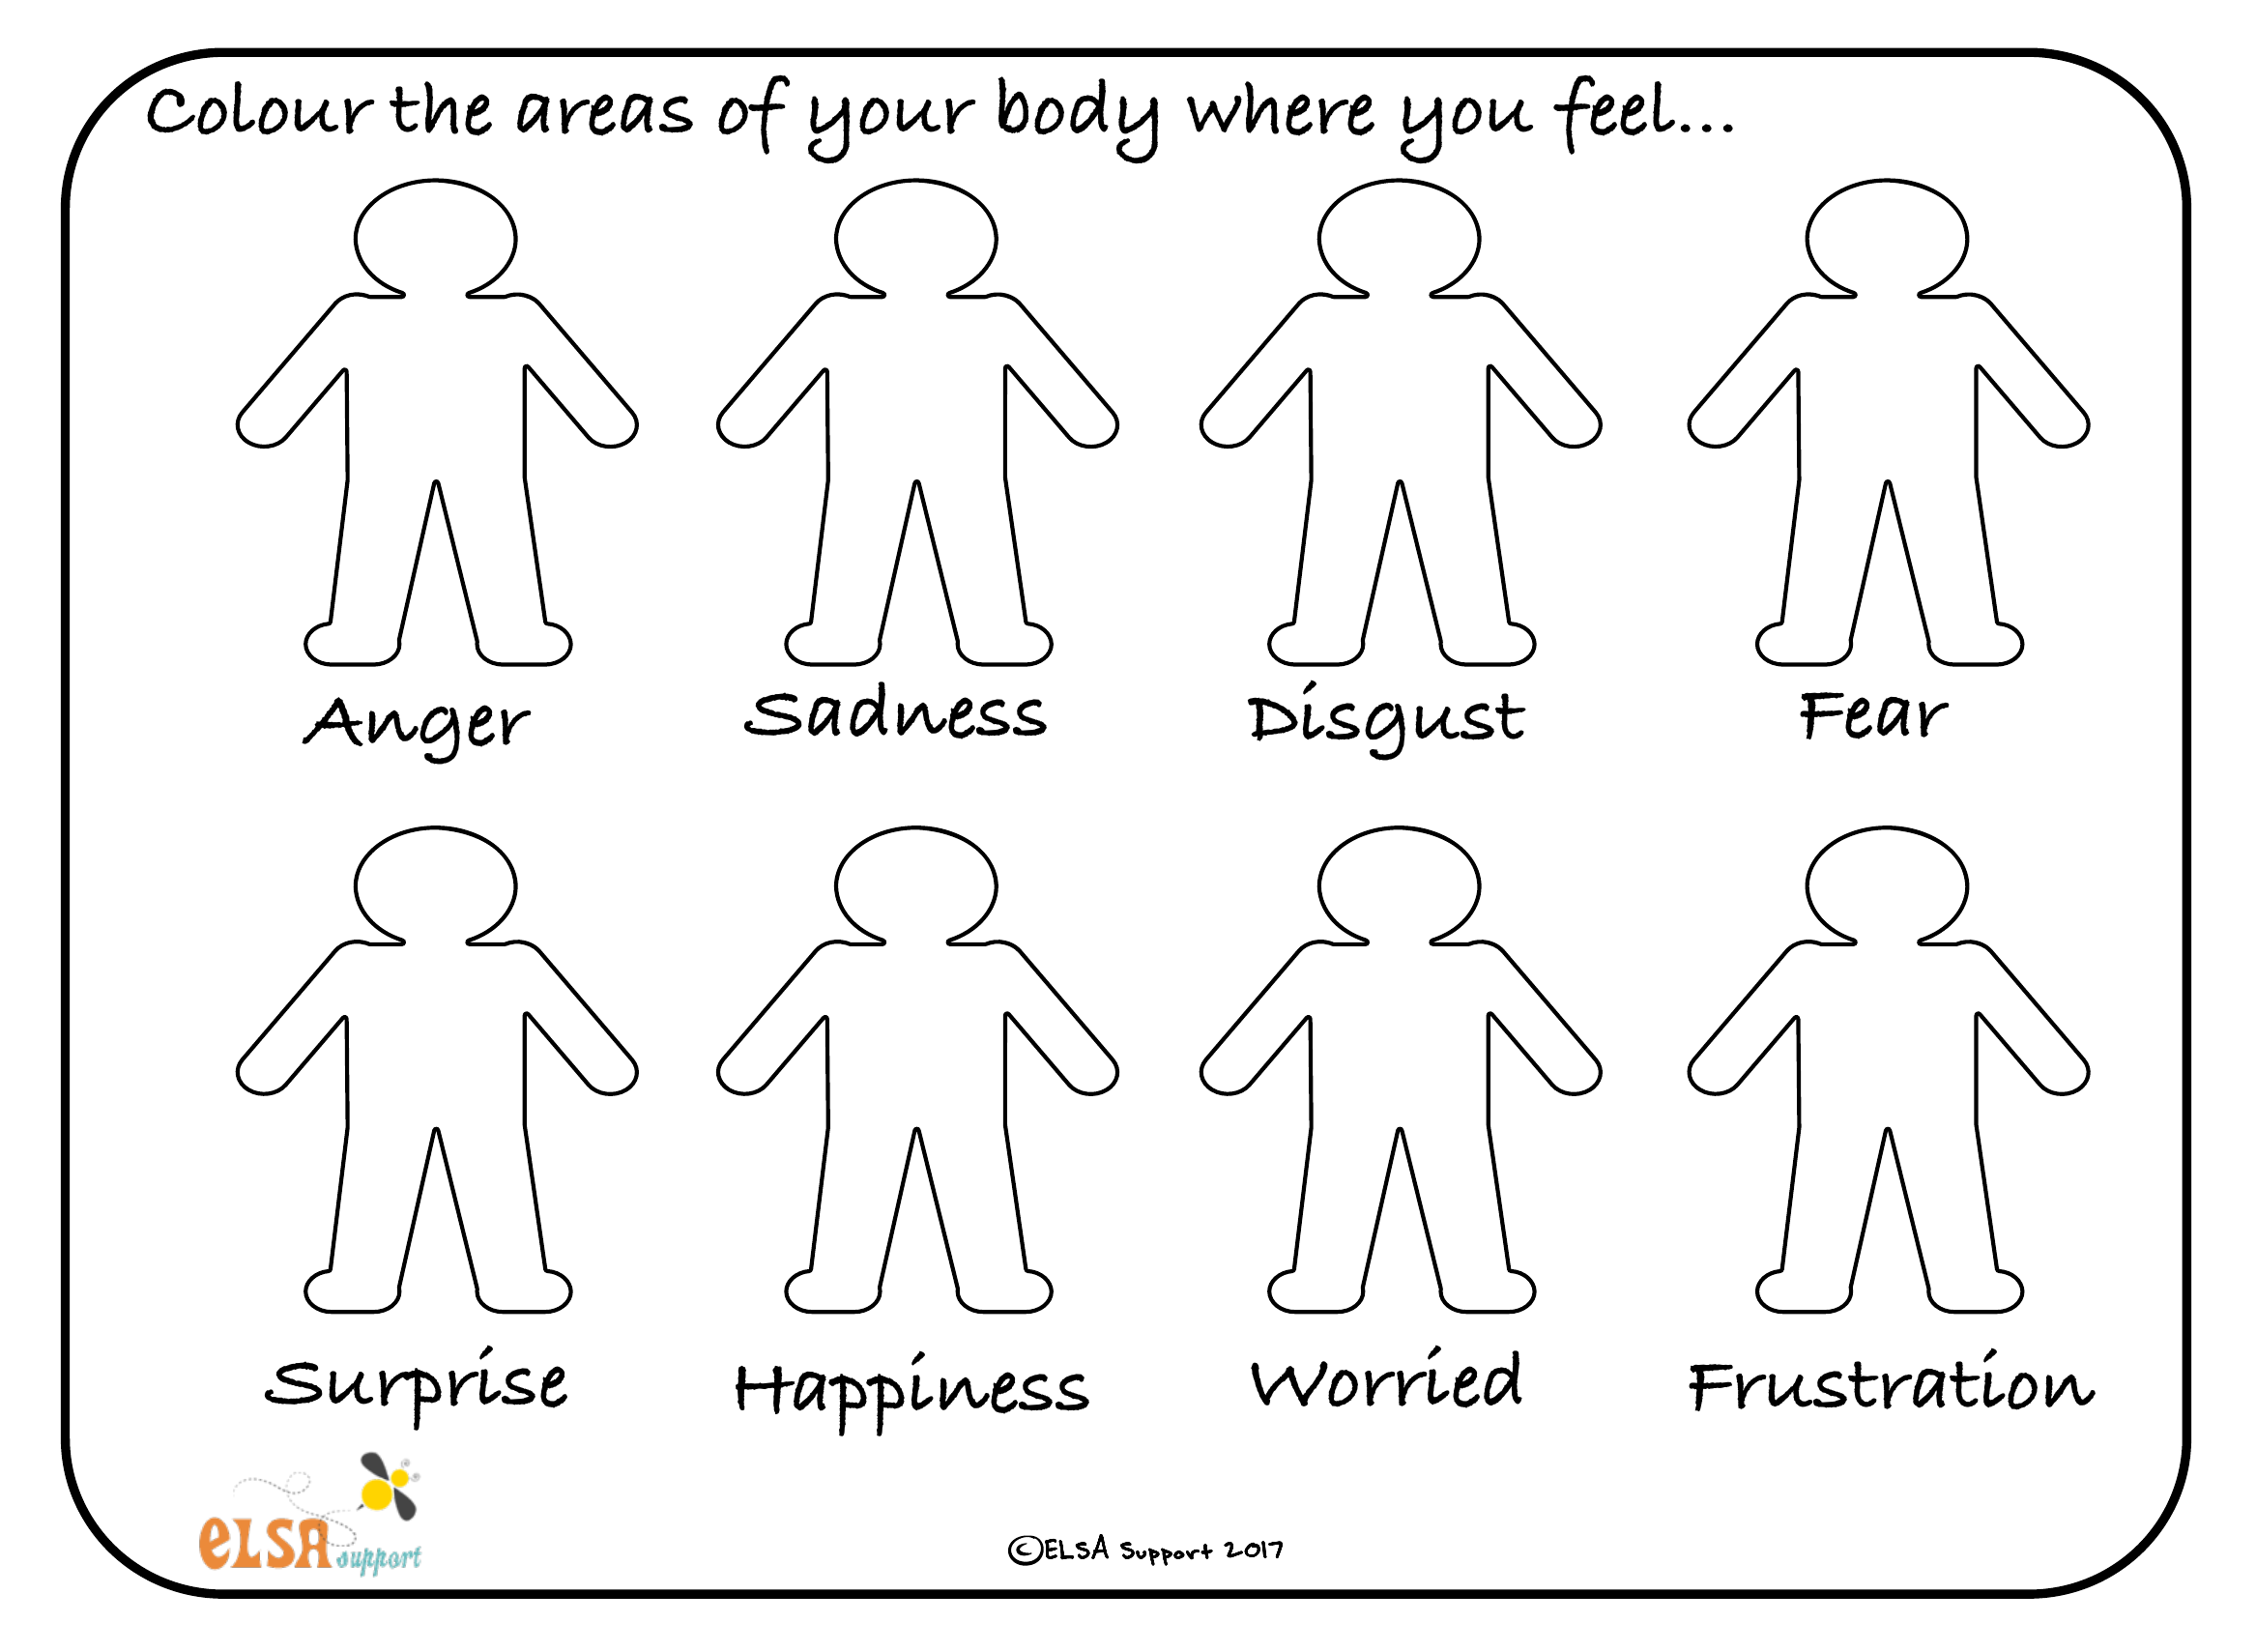 This Little Worksheet Is Helpful For Children To